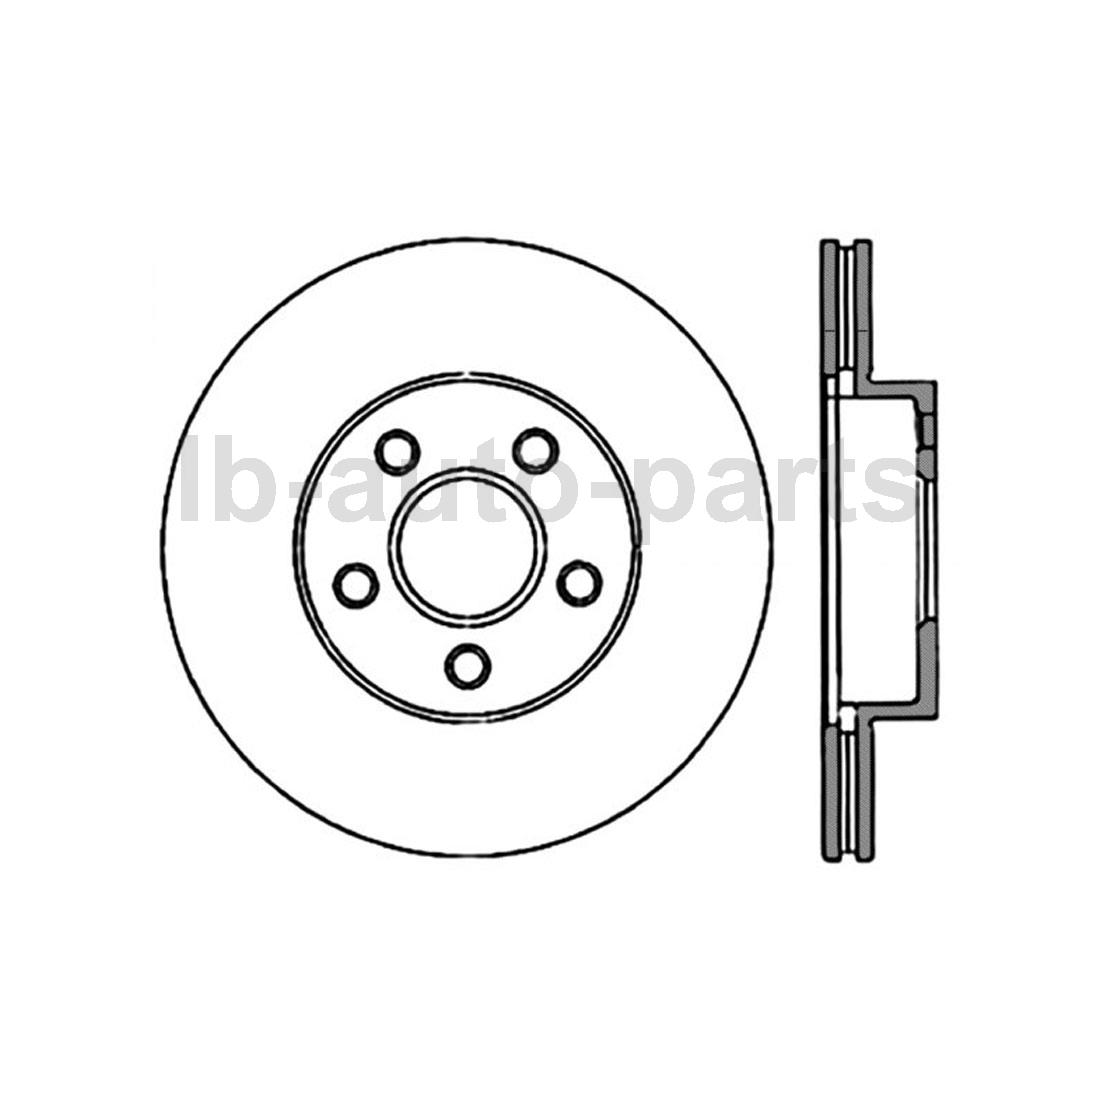 For Chevrolet Beretta Cavalier 2x Centric Parts Front Disc